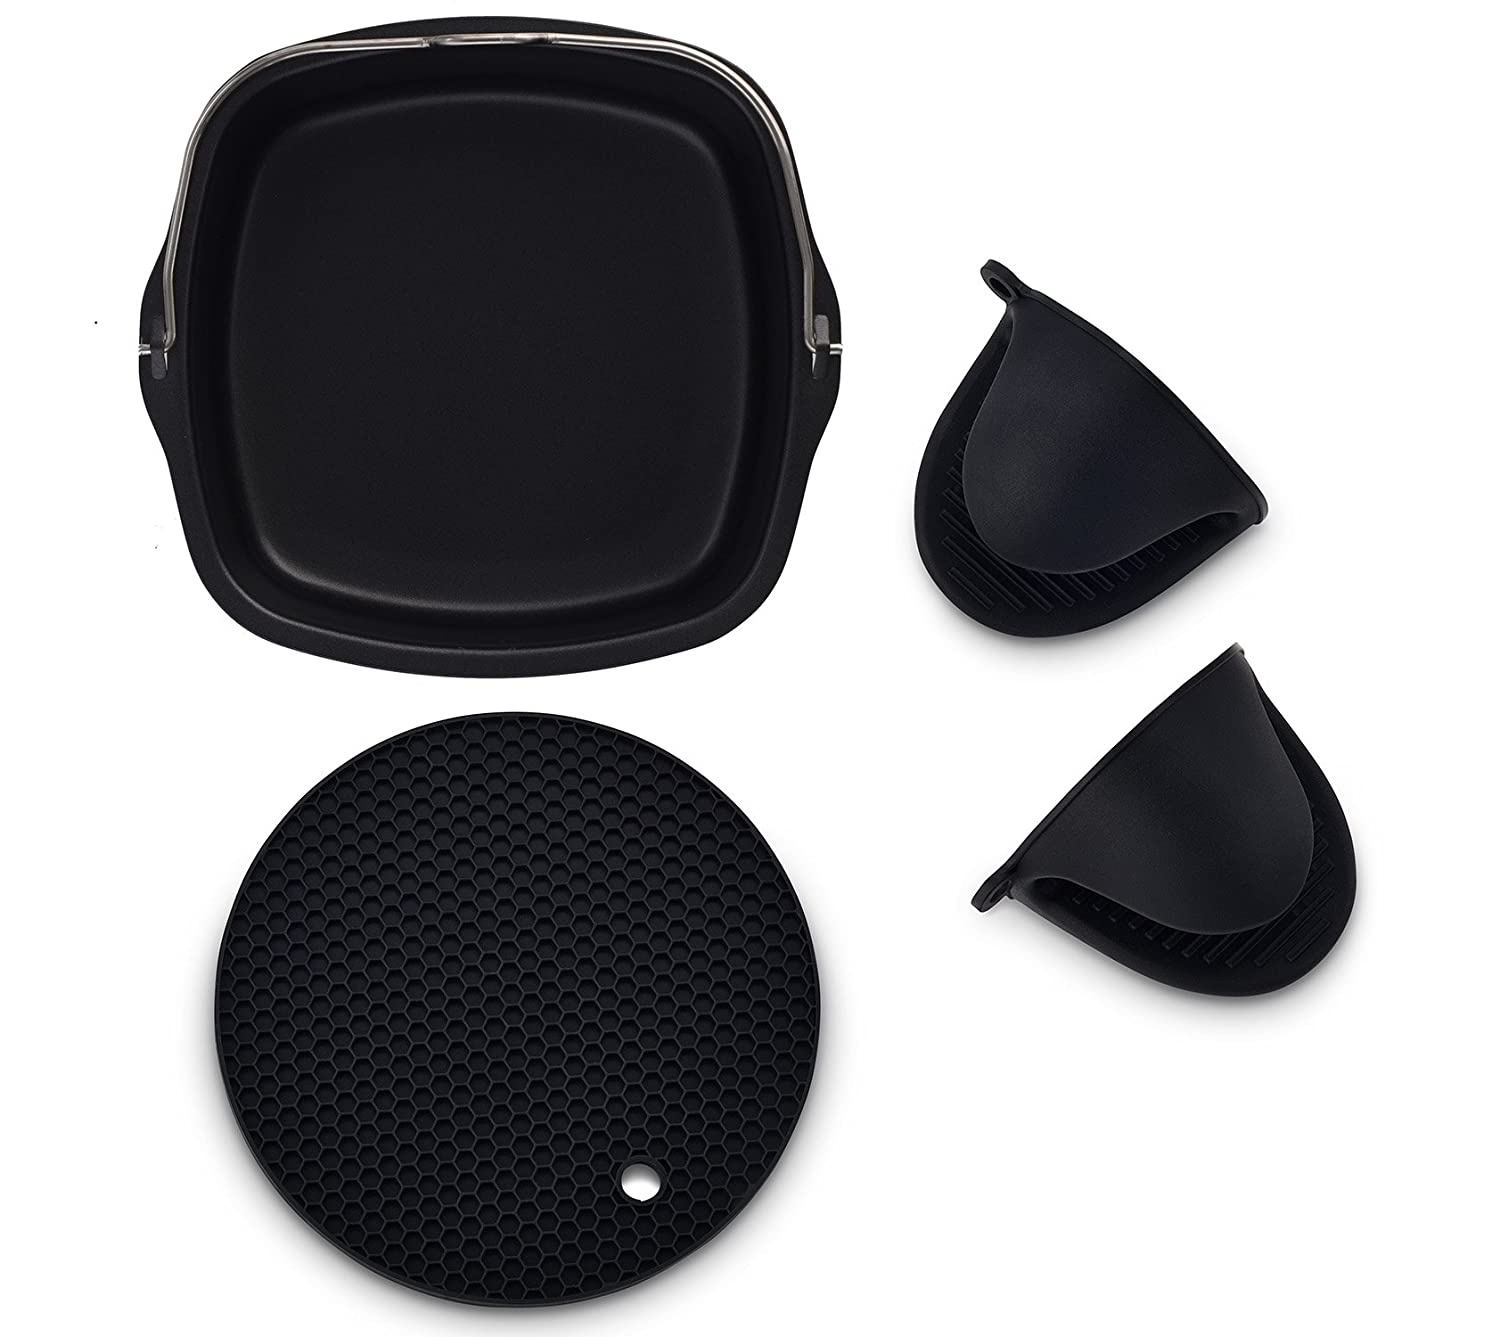 Air Fryer Non-Stick Baking Pan Fits Philips Airfryer, GoWise USA, Power Airfryer, Cozyna, Avalon Bay & Premium Silicone Mini Oven Mitts & Silicone Trivet-Air Fryer Accessories-Set of 3 ( Black)